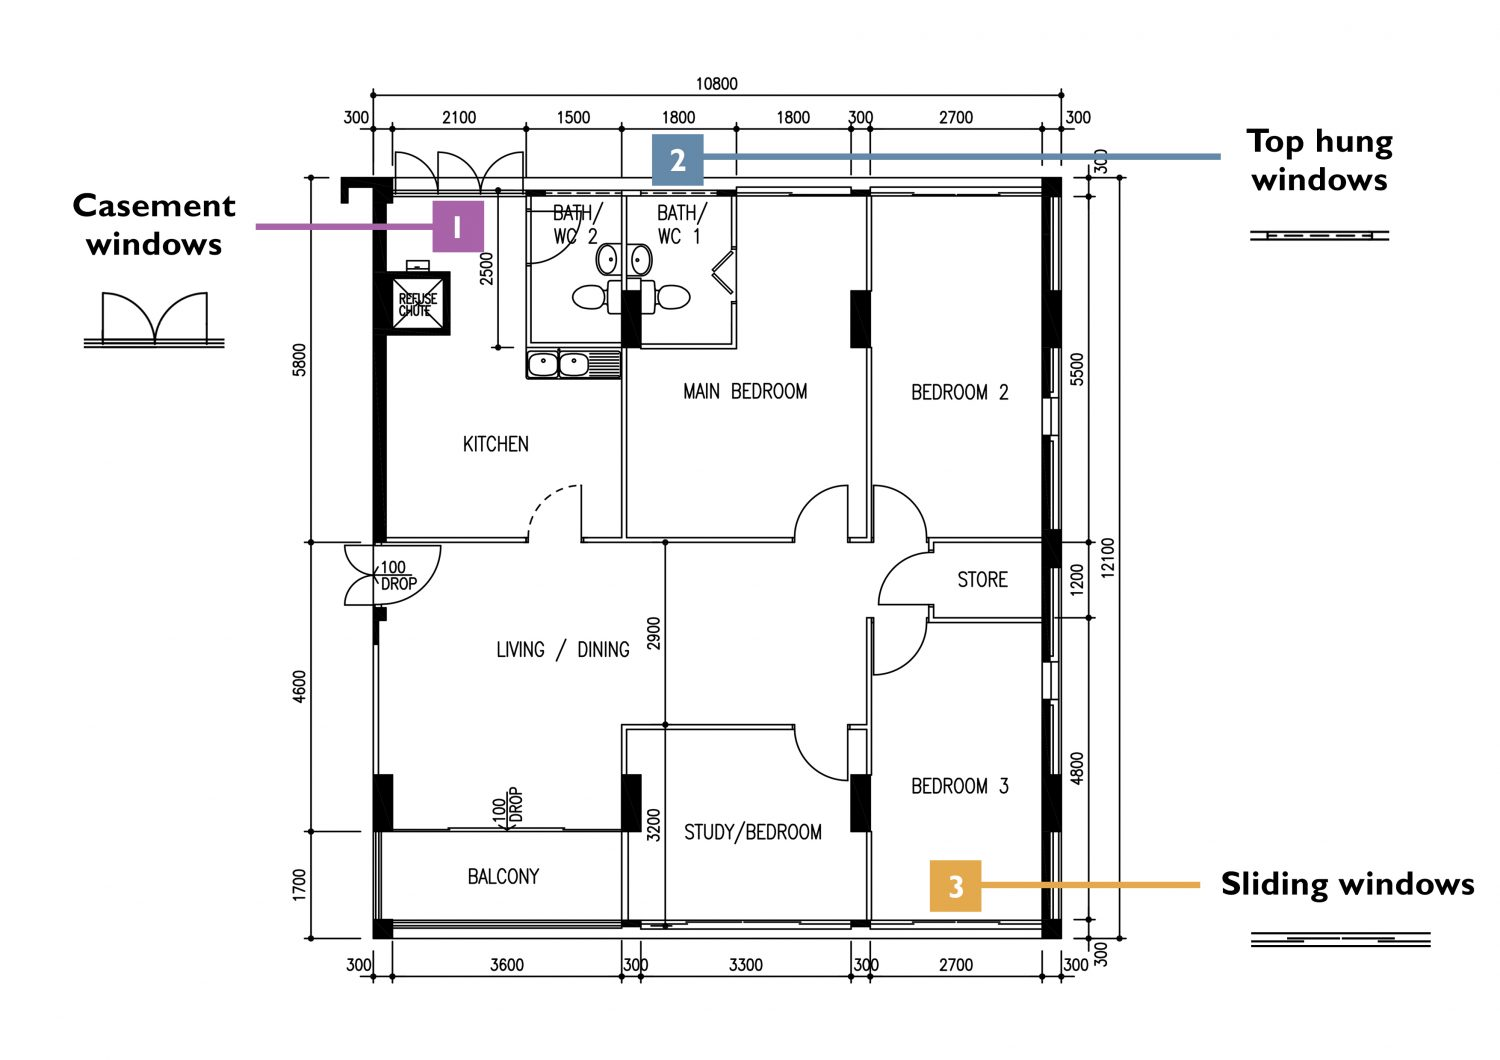 how to read HDB floor plans (windows)